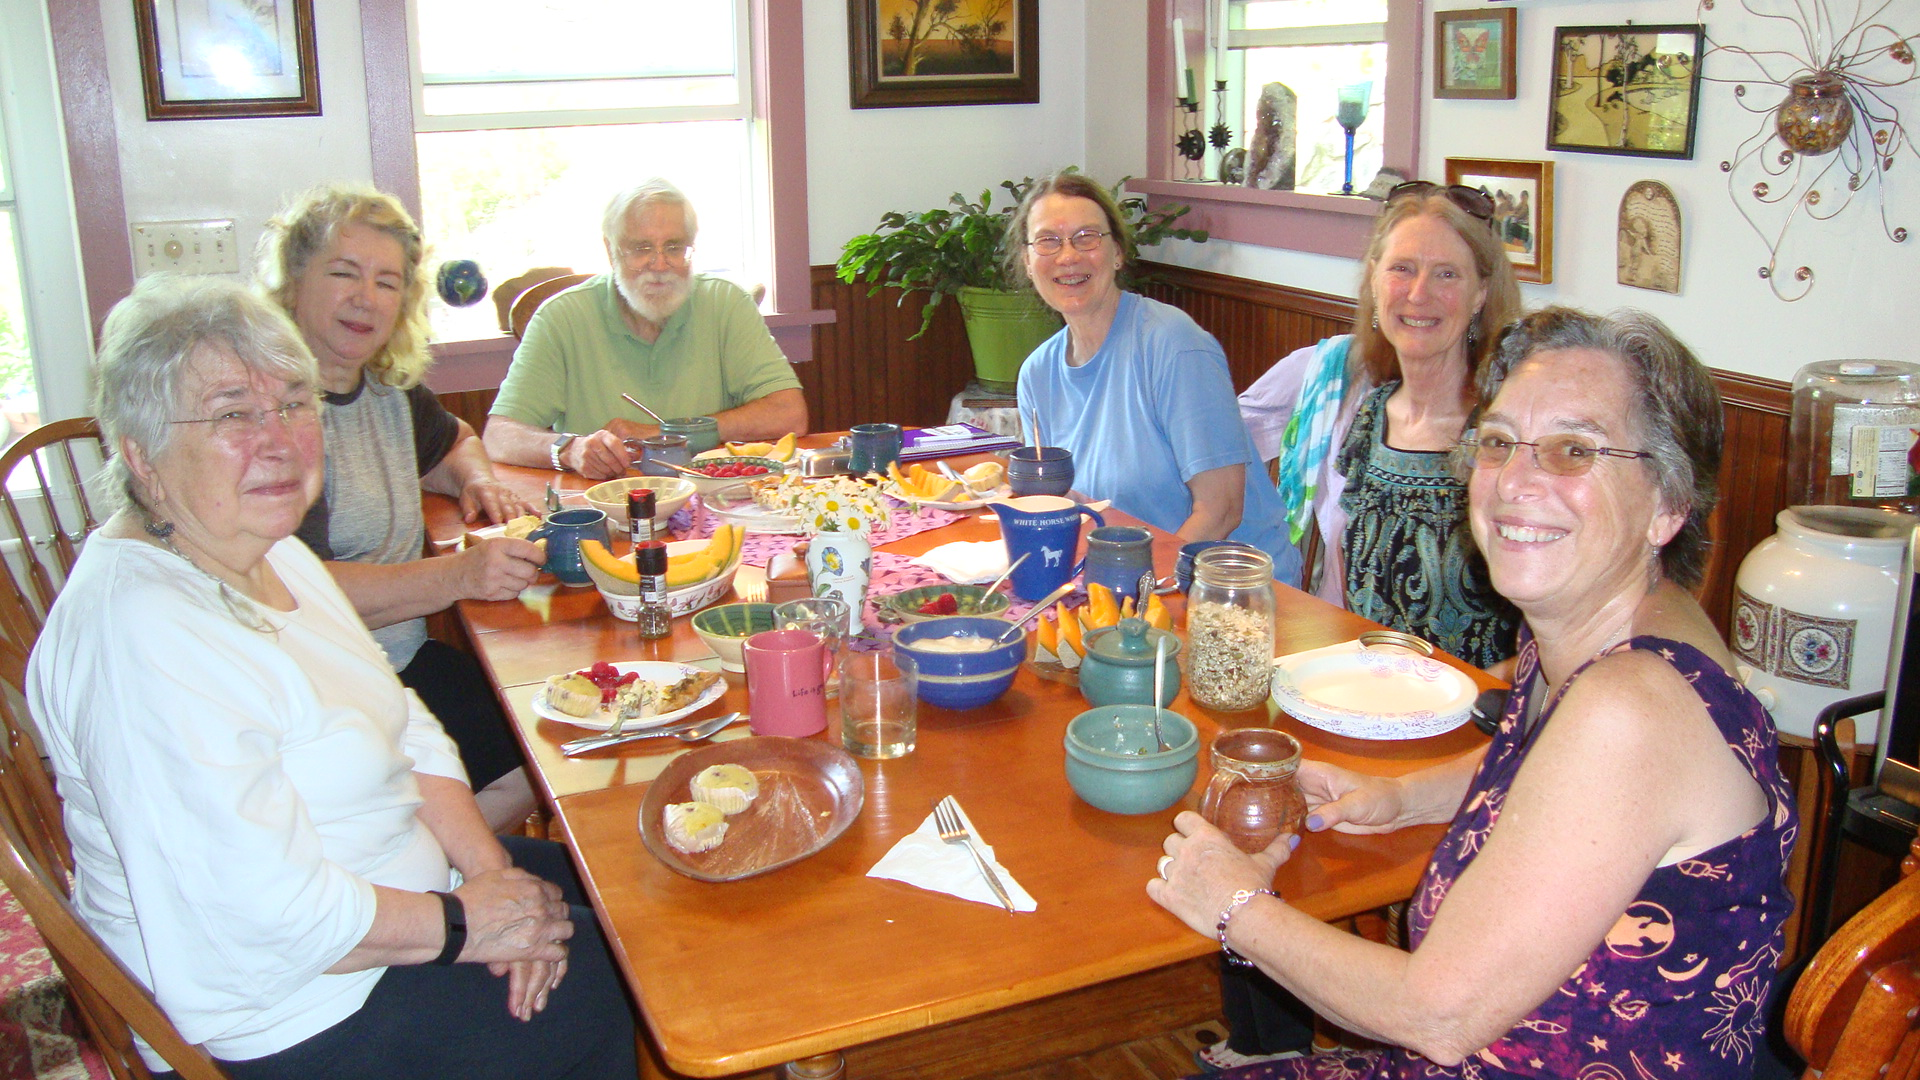 Family style meals in the historic Lock Keeper's home